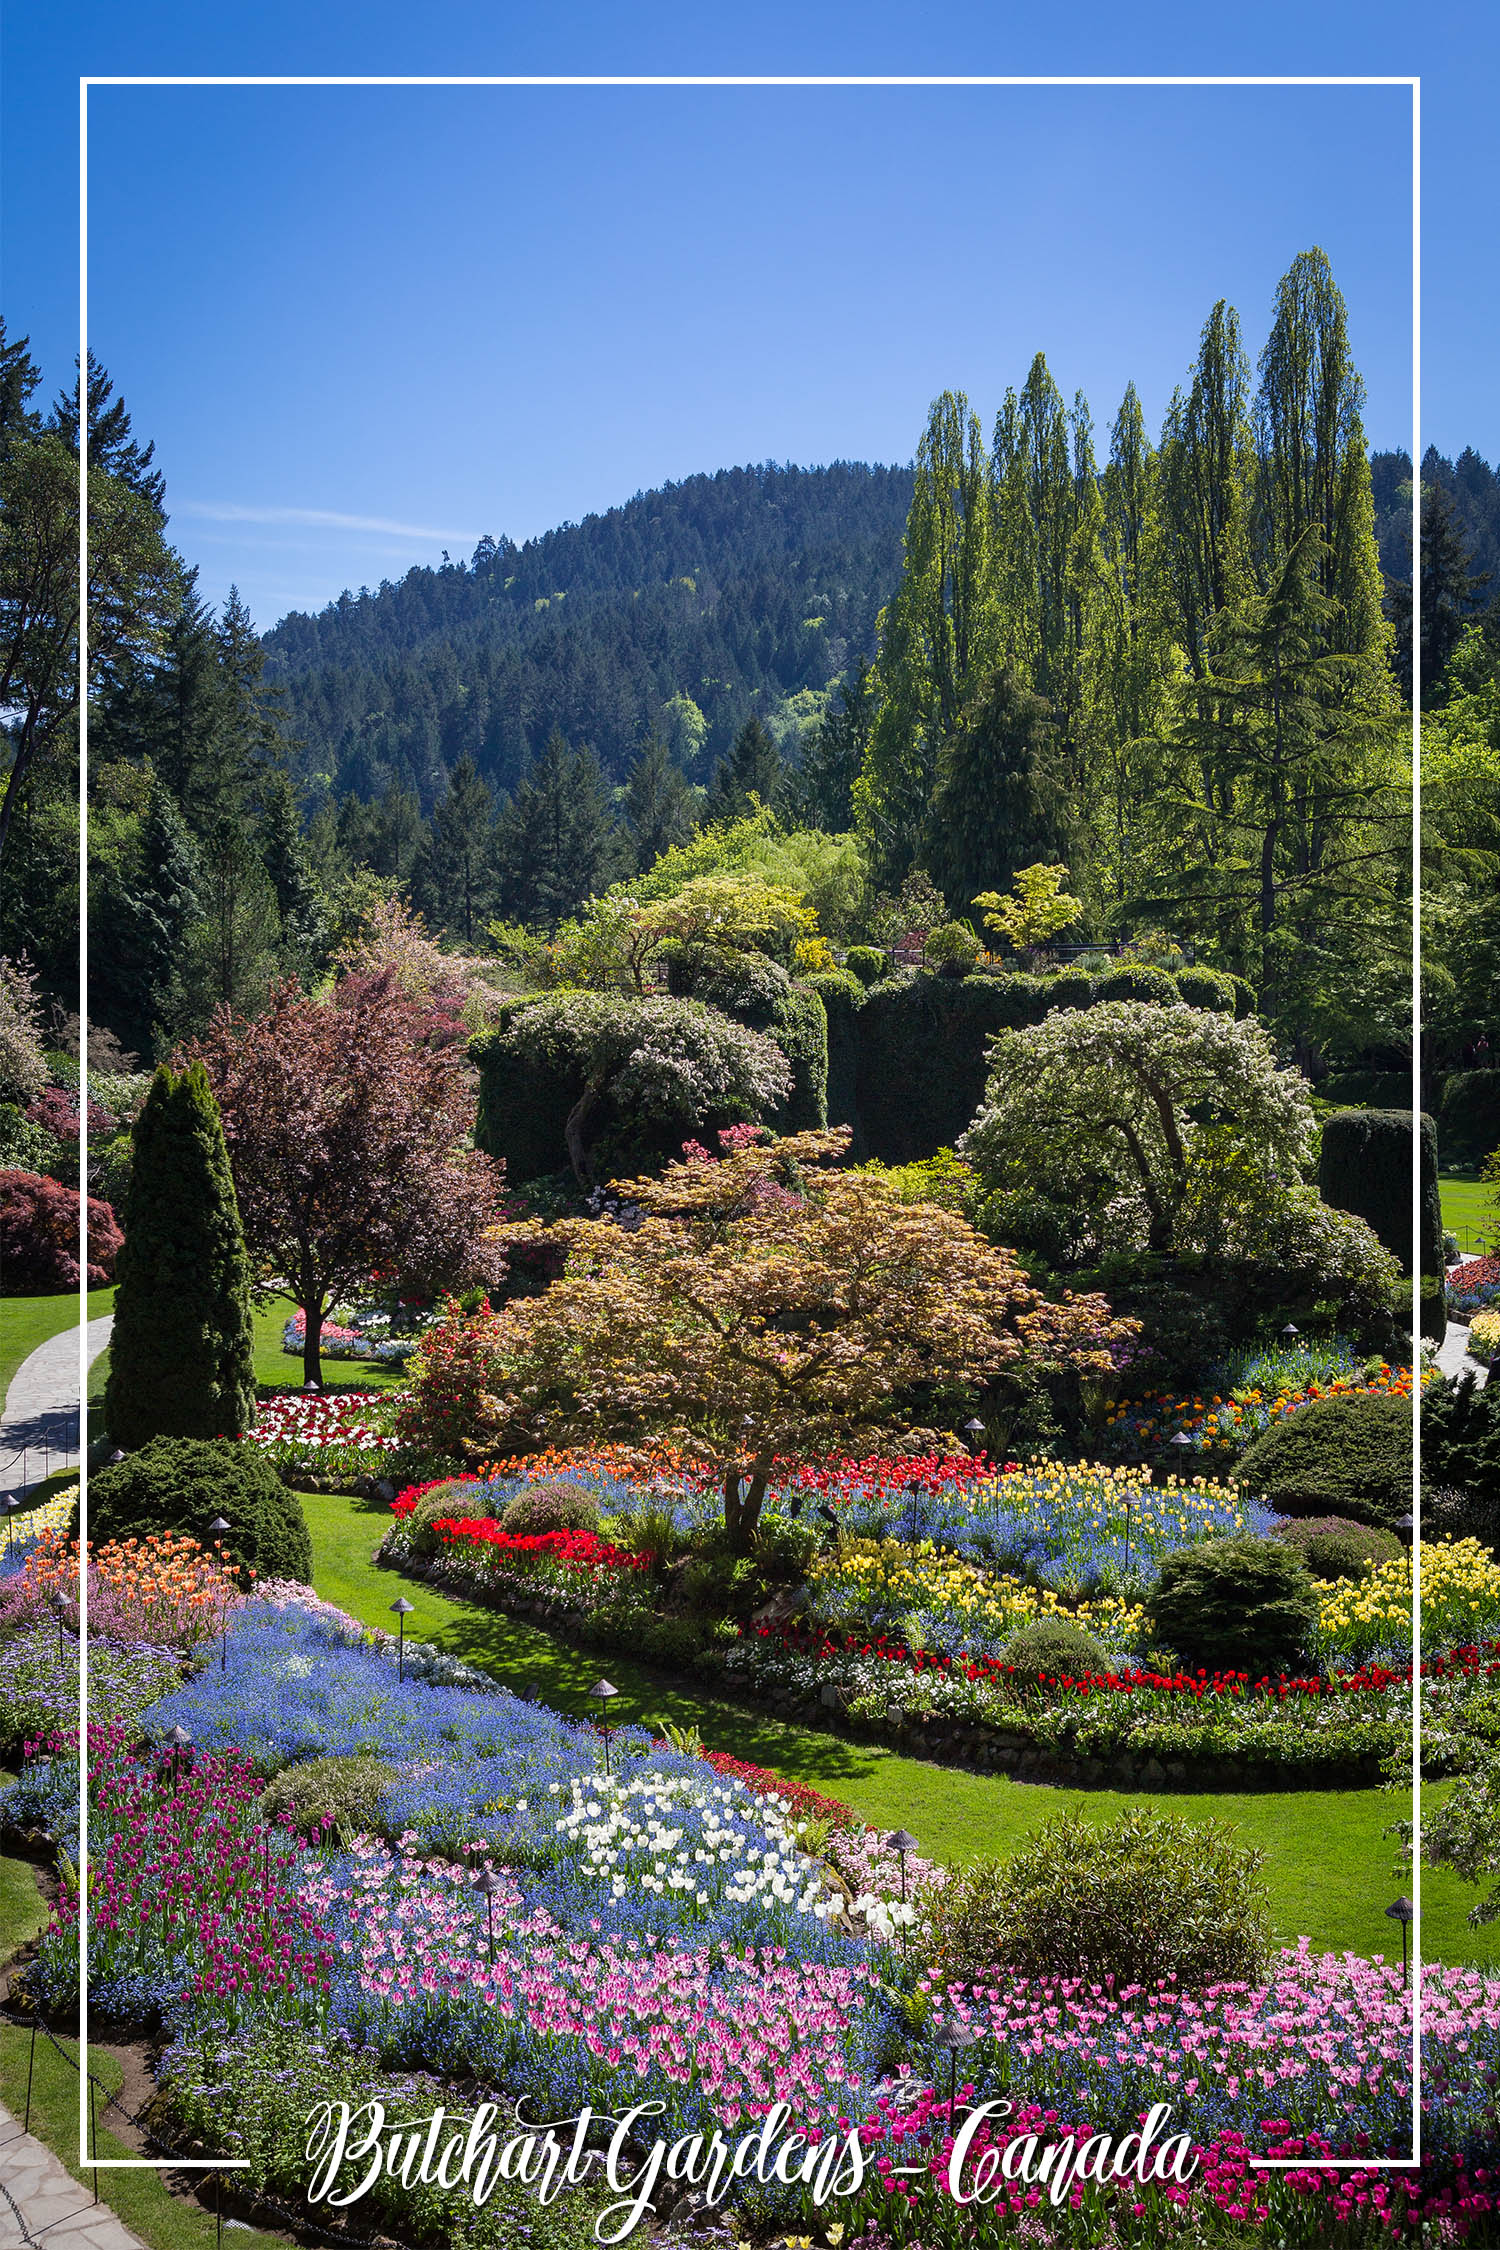 S Rochelle Photography Travel Tidbits Butchart Gardens Canada.jpg